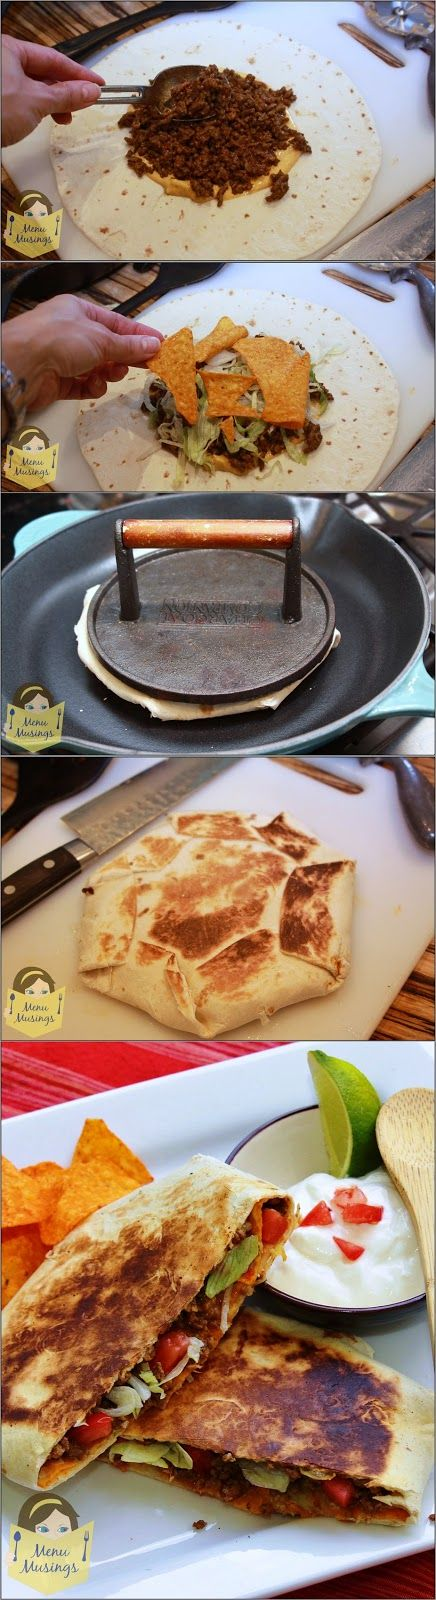 Beefy Crunch Wrap Supreme - Move over Taco Bell!  Now one of your fast food menu items can be in your hand at your own house! These are really easy to make and so easy to personalize. Step-by-step photos!